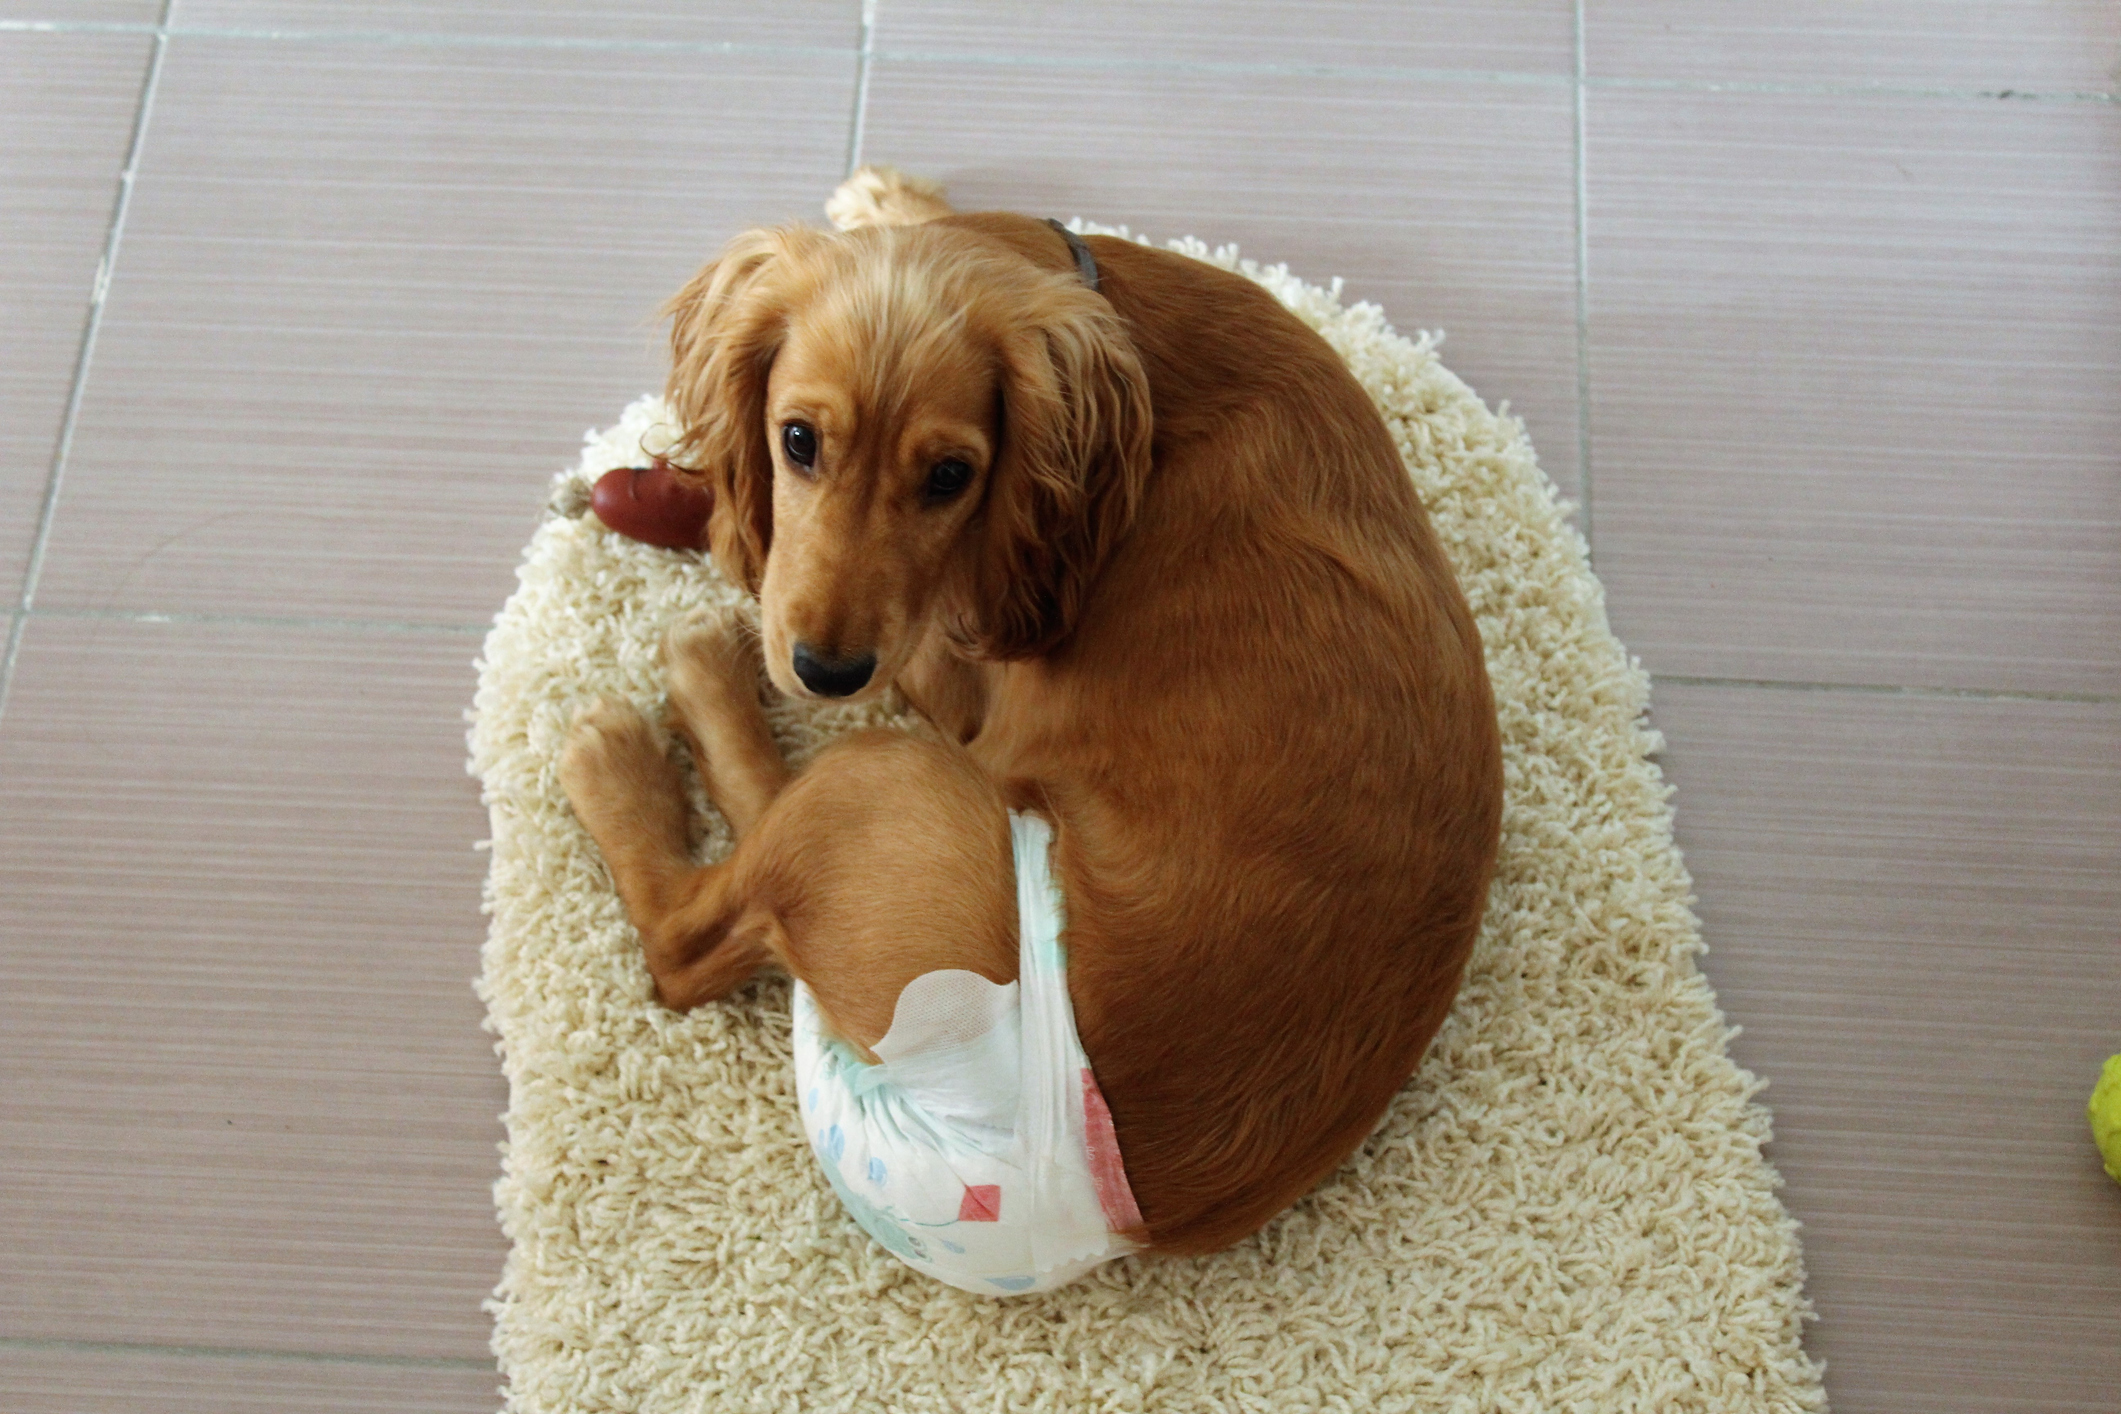 A long haired Dachshund wearing a dog diaper